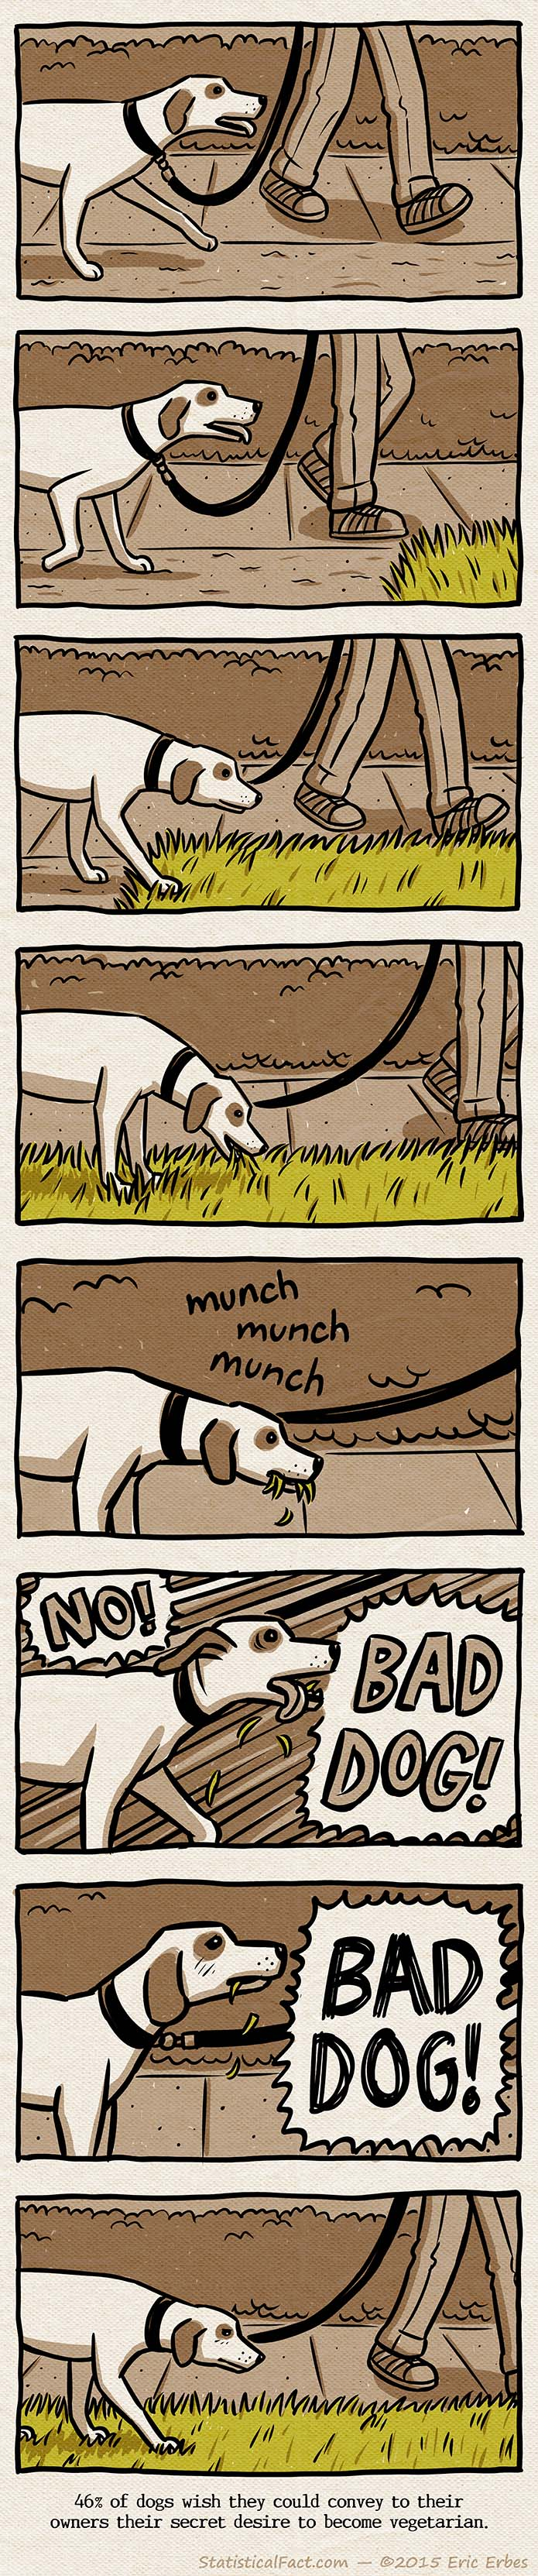 Dog on a leash is walking down the sidewalk, encounters patch of grass, starts to eat grass and gets scolded by his owner